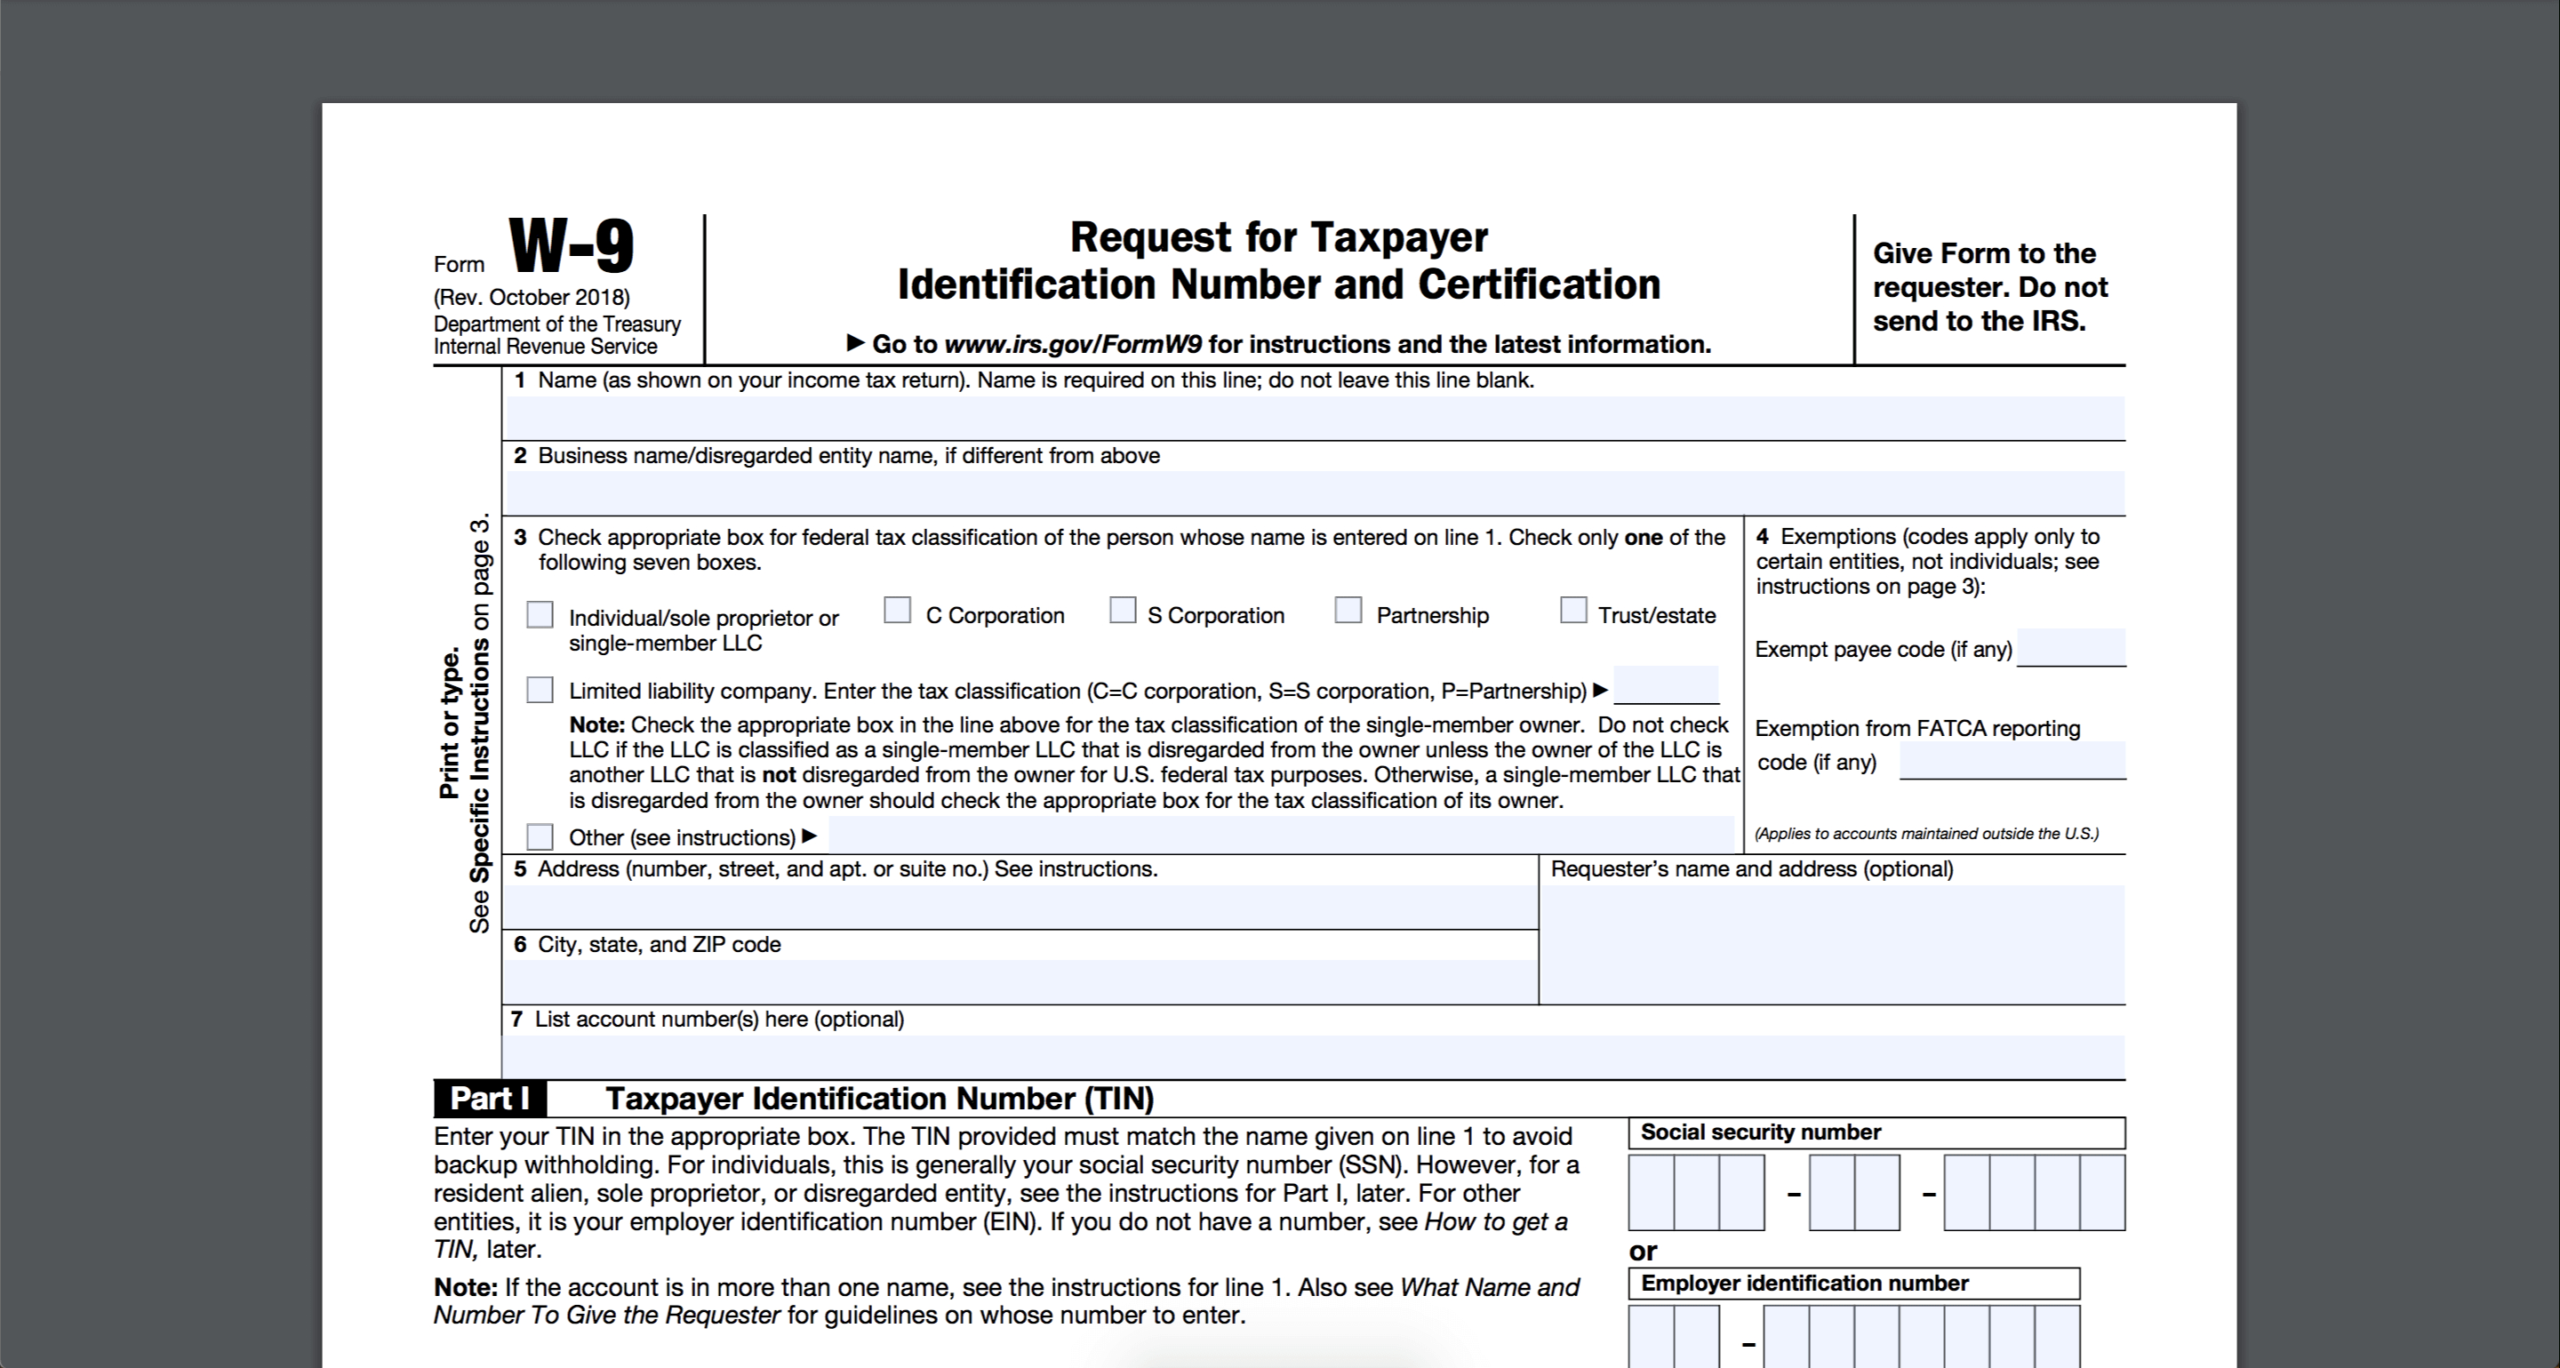 How To Fill Out And Sign Your W-9 Form Online throughout Blank W 9 Form To Print